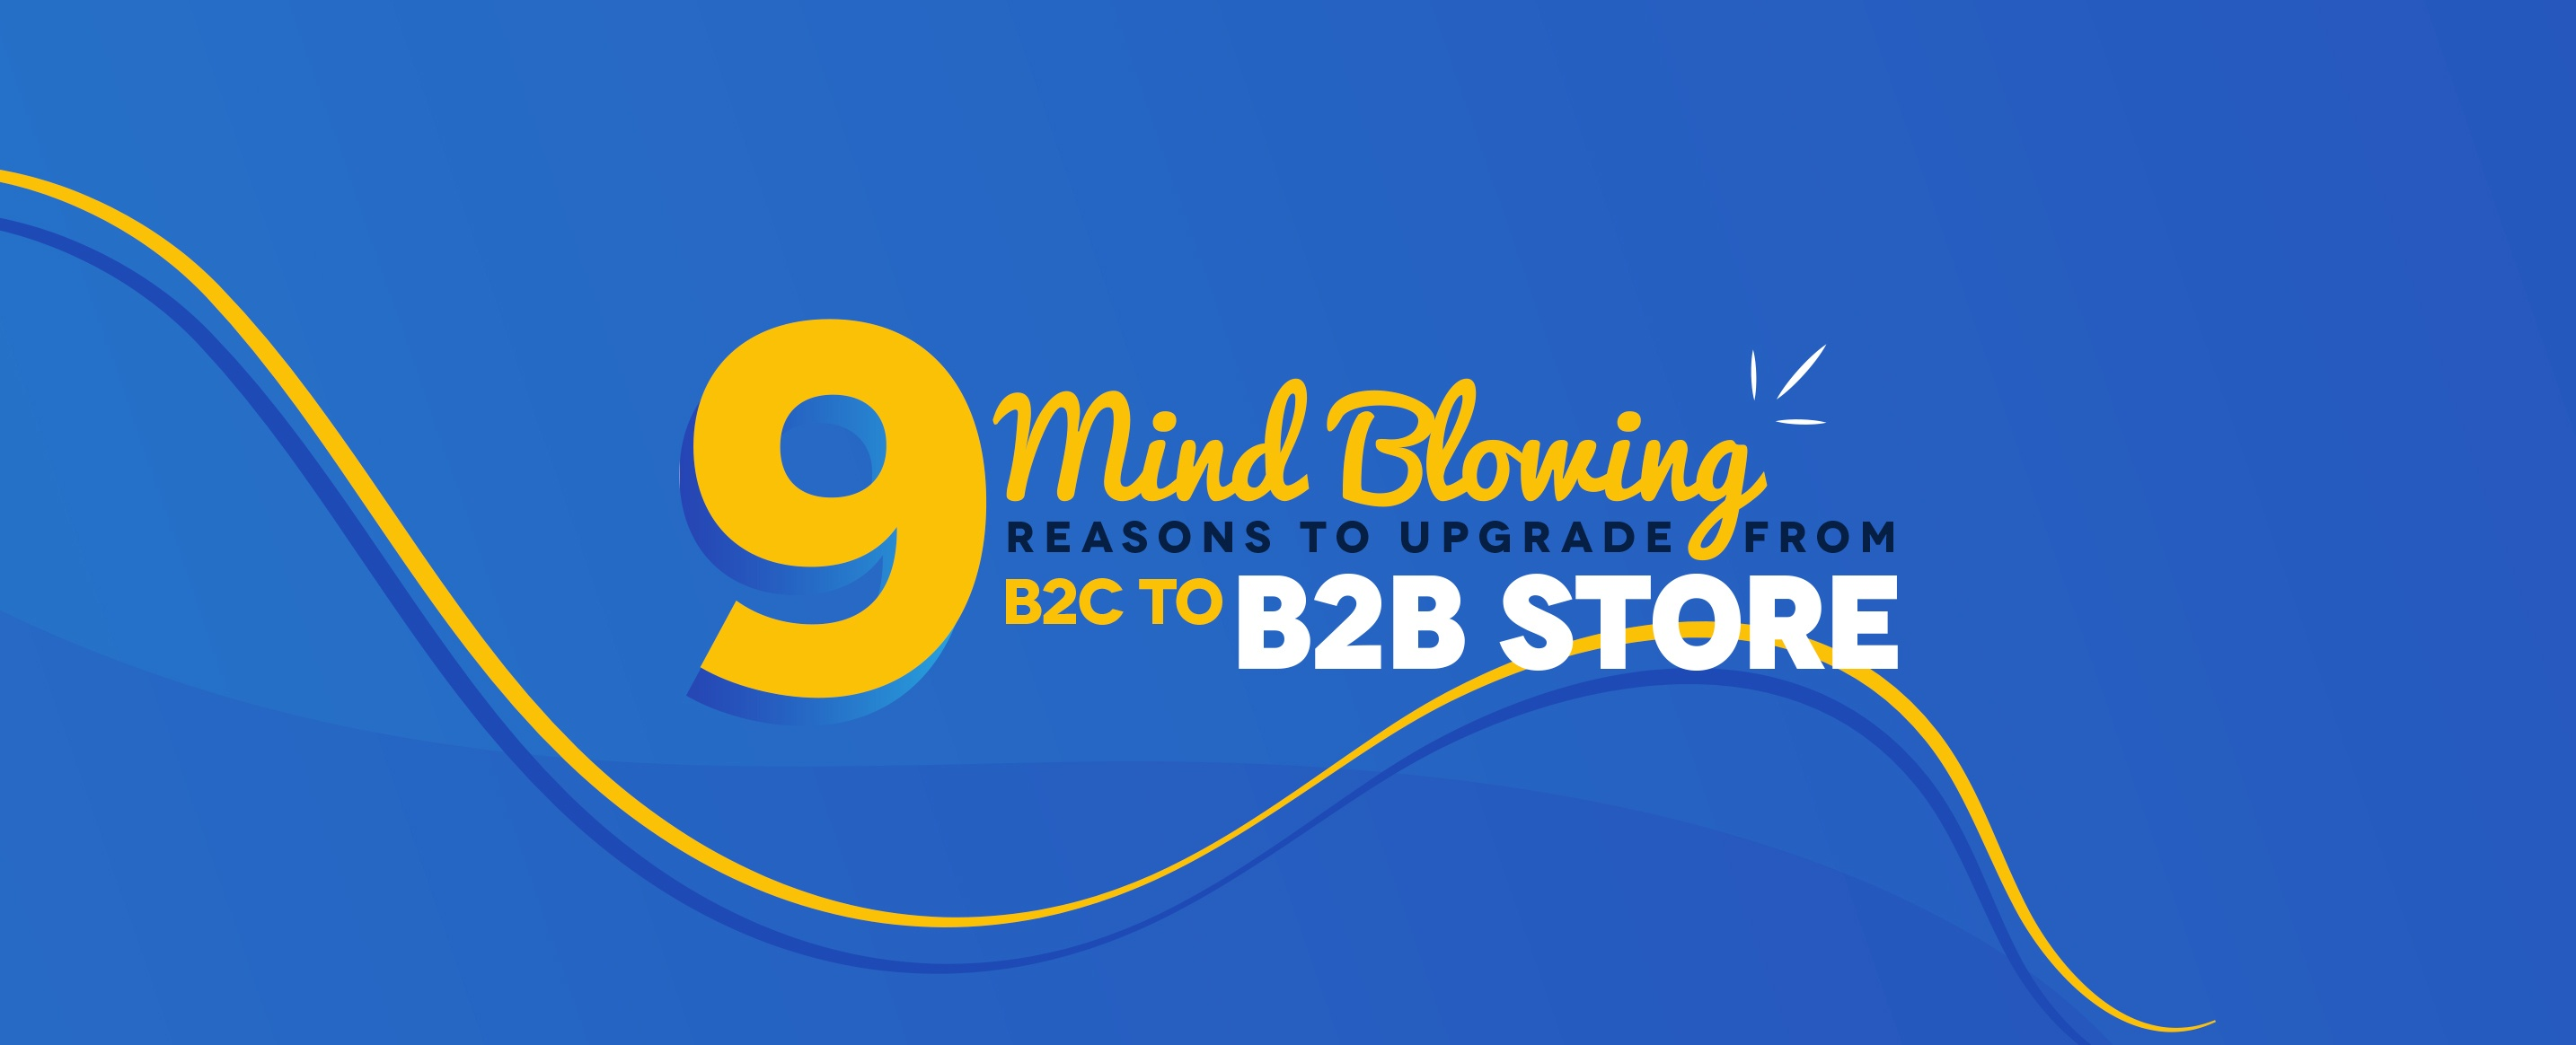 9-Mind-Blowing-Reasons-to-Upgrade-From-B2C-to-B2B-Store